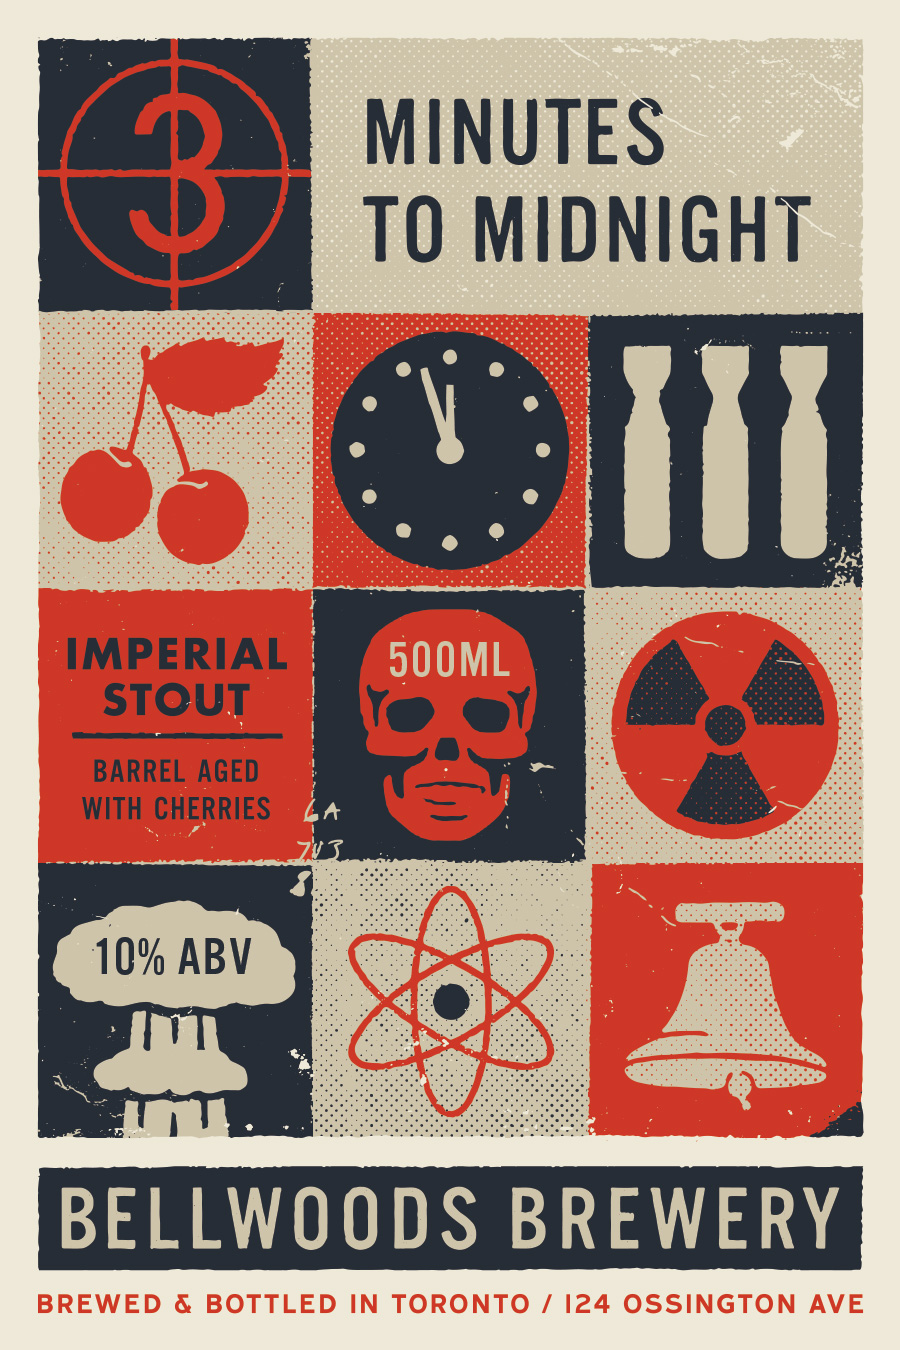 Bellwoods Brewery 3 Minutes to Midnight .jpg